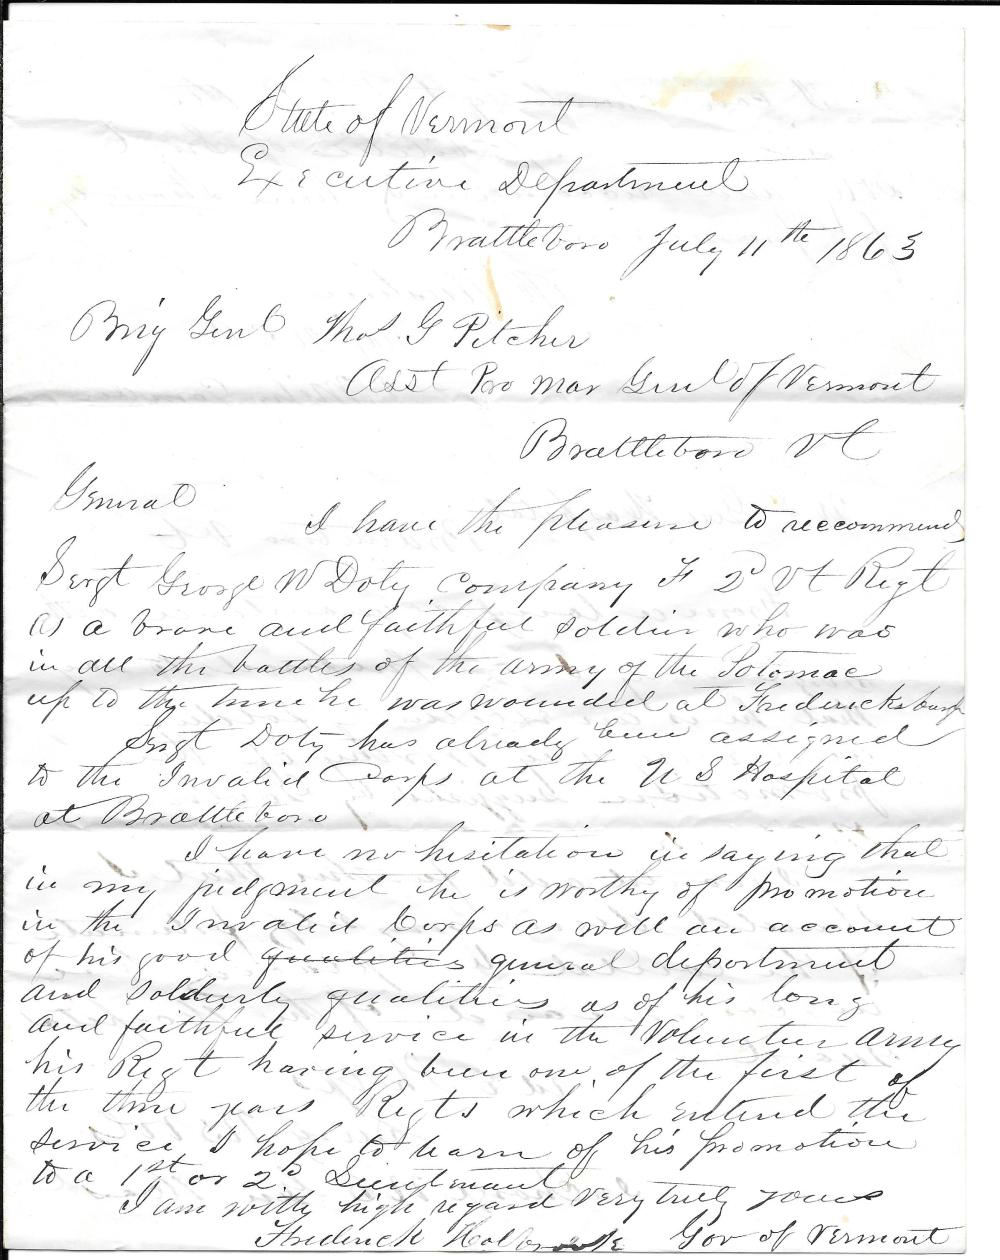 Civil War recommendation letter, Col. Doty